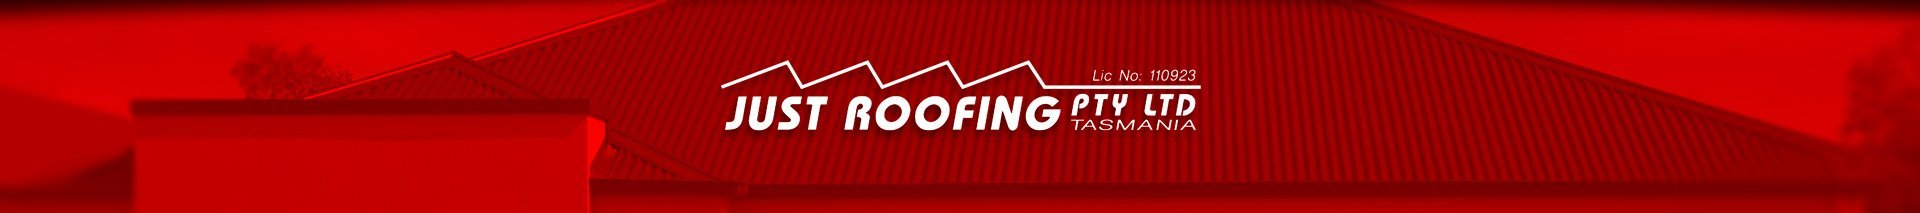 Roofing by Just Roofing